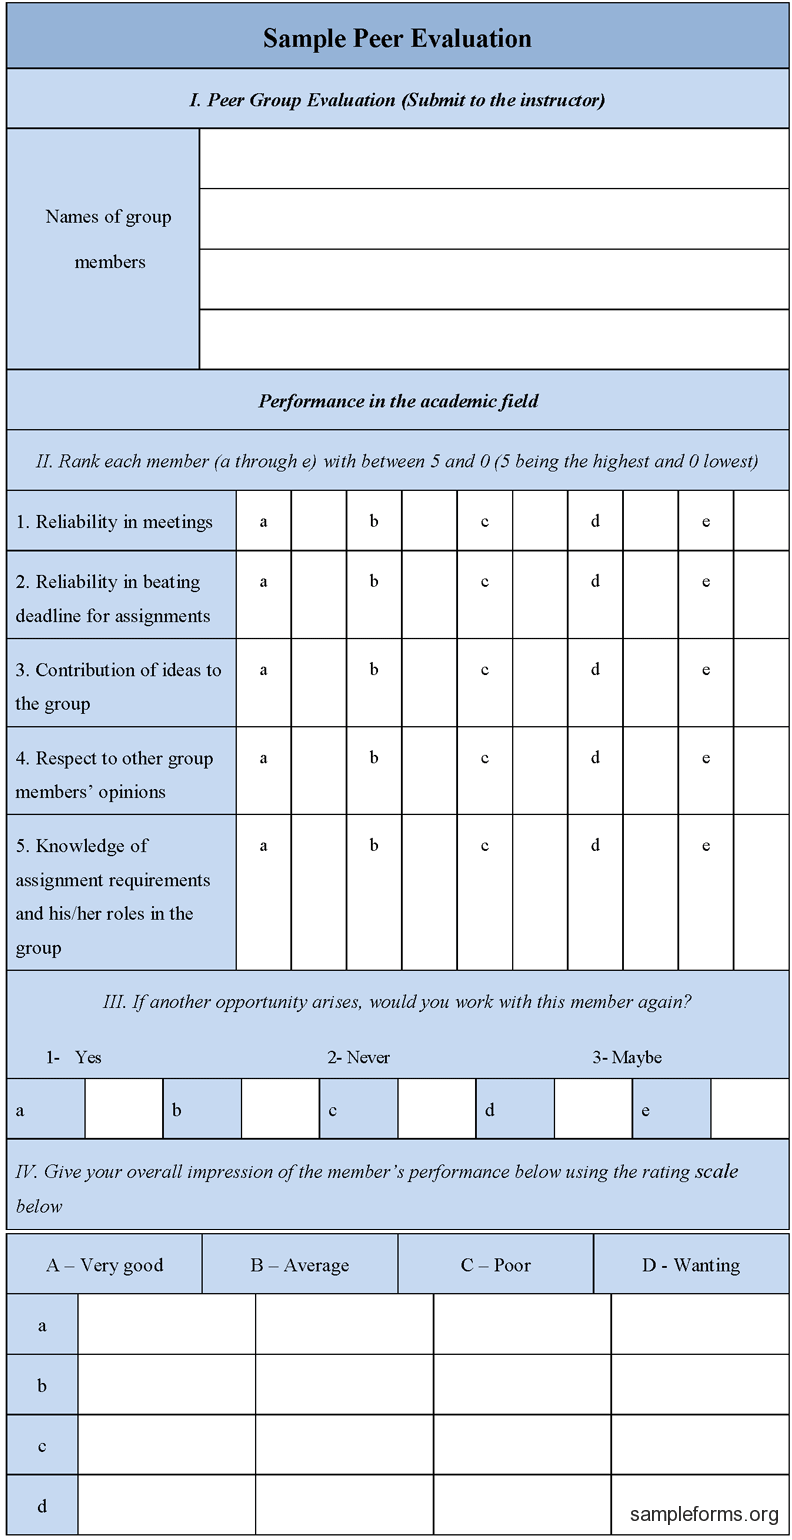 Download Editable Sample Peer Evaluation Form for only $4.99 ...